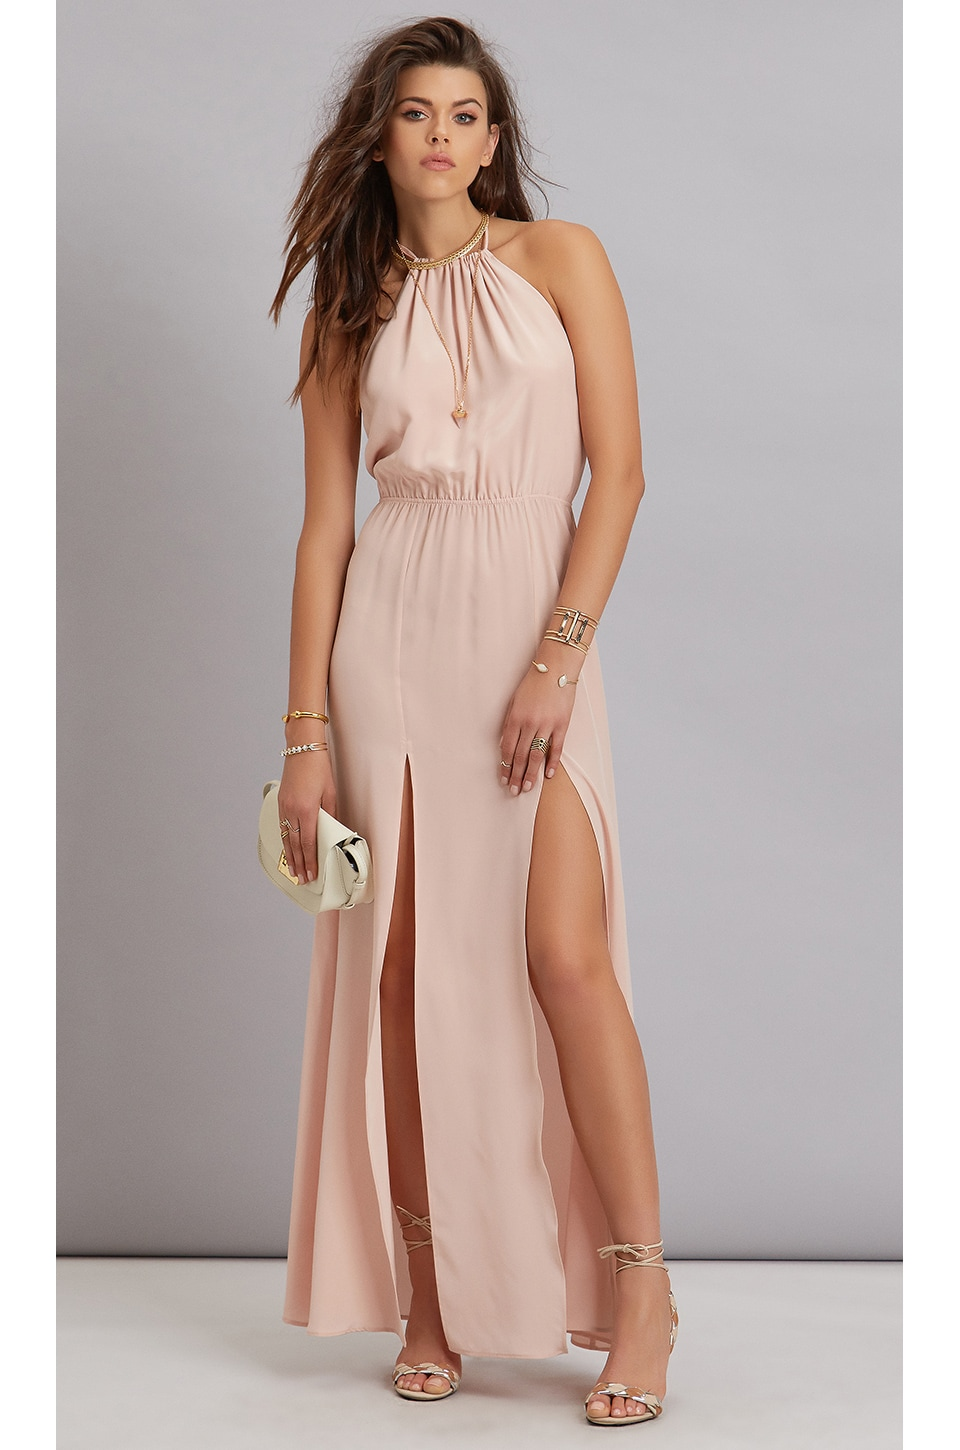 STONE_COLD_FOX Onyx Gown in Dusty Rose | REVOLVE